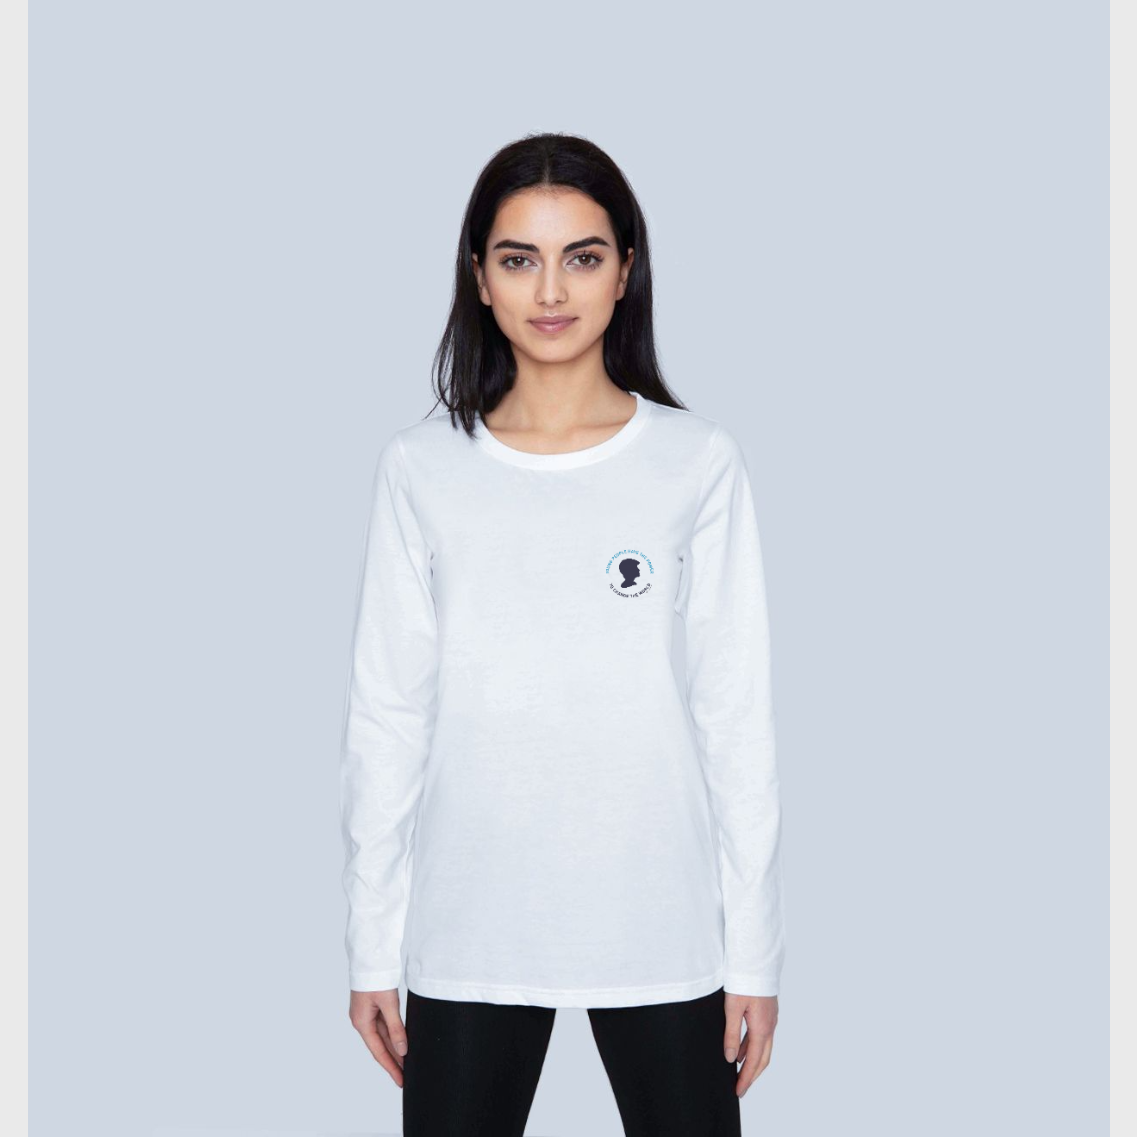 Diana Long Sleeve Tee (Unisex)